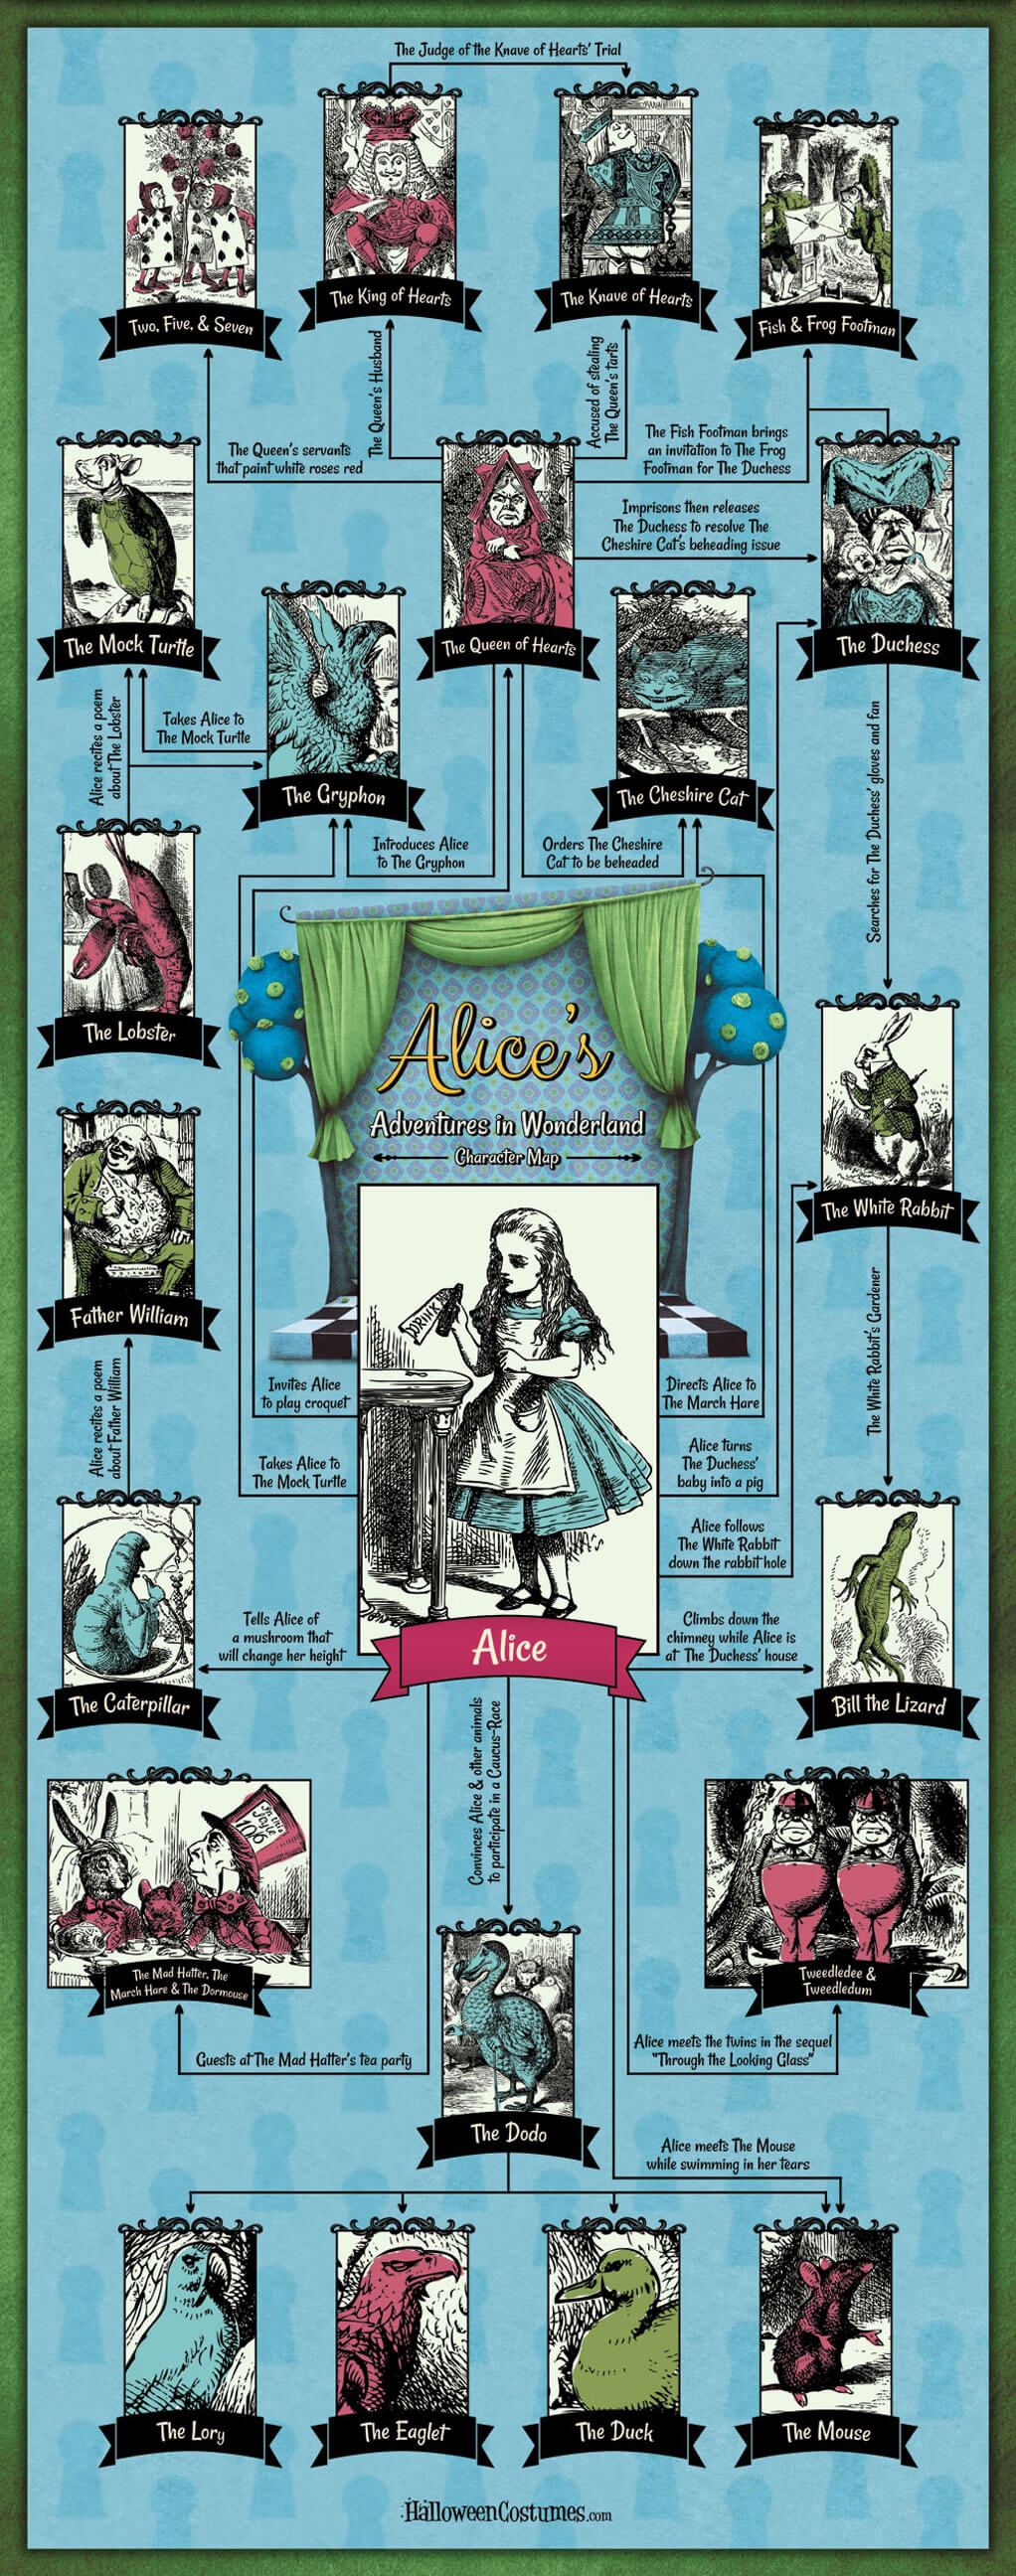 Alice's Adventures in Wonderland Character Guide Infographic